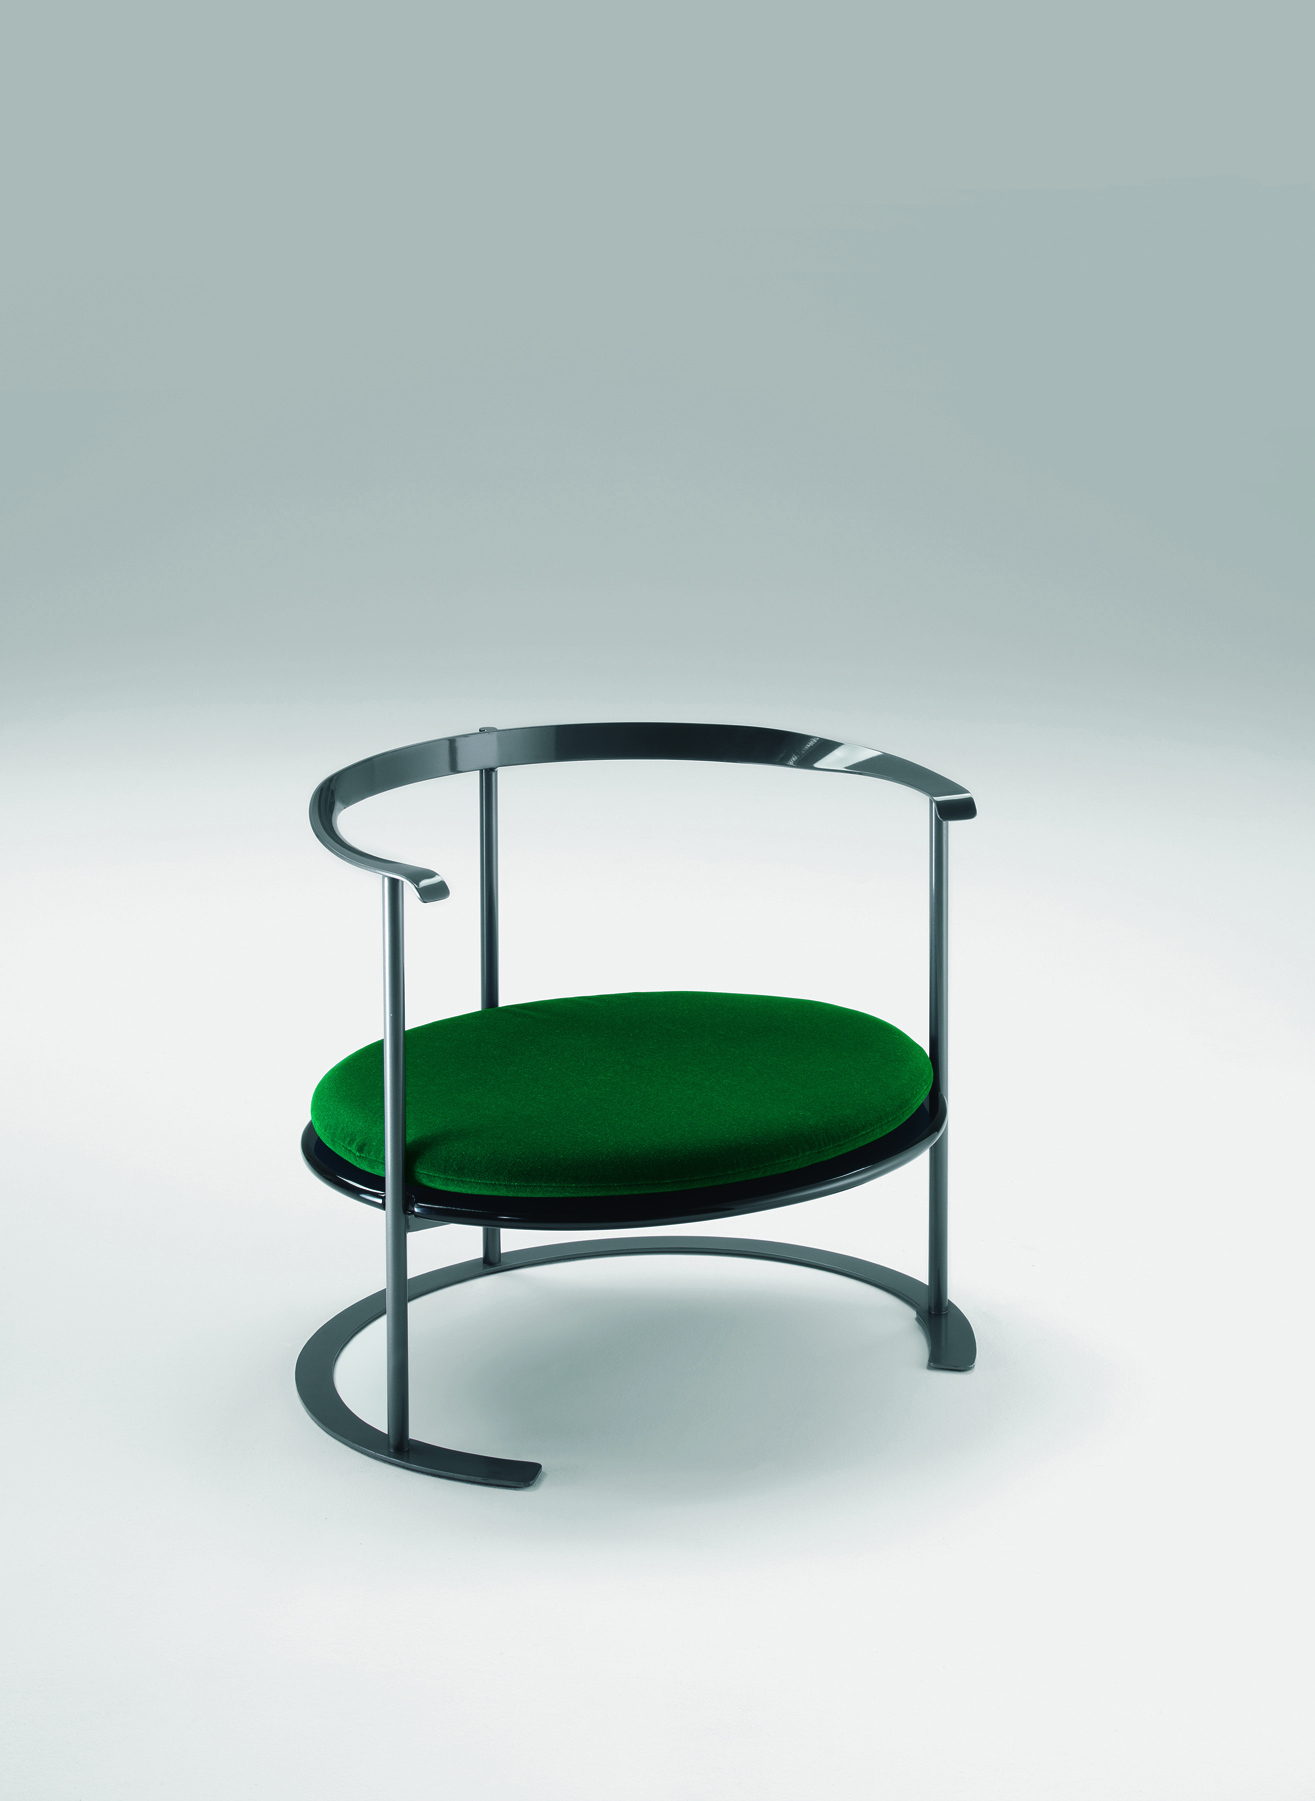 P4 Catilina bassa-2 chair 1958